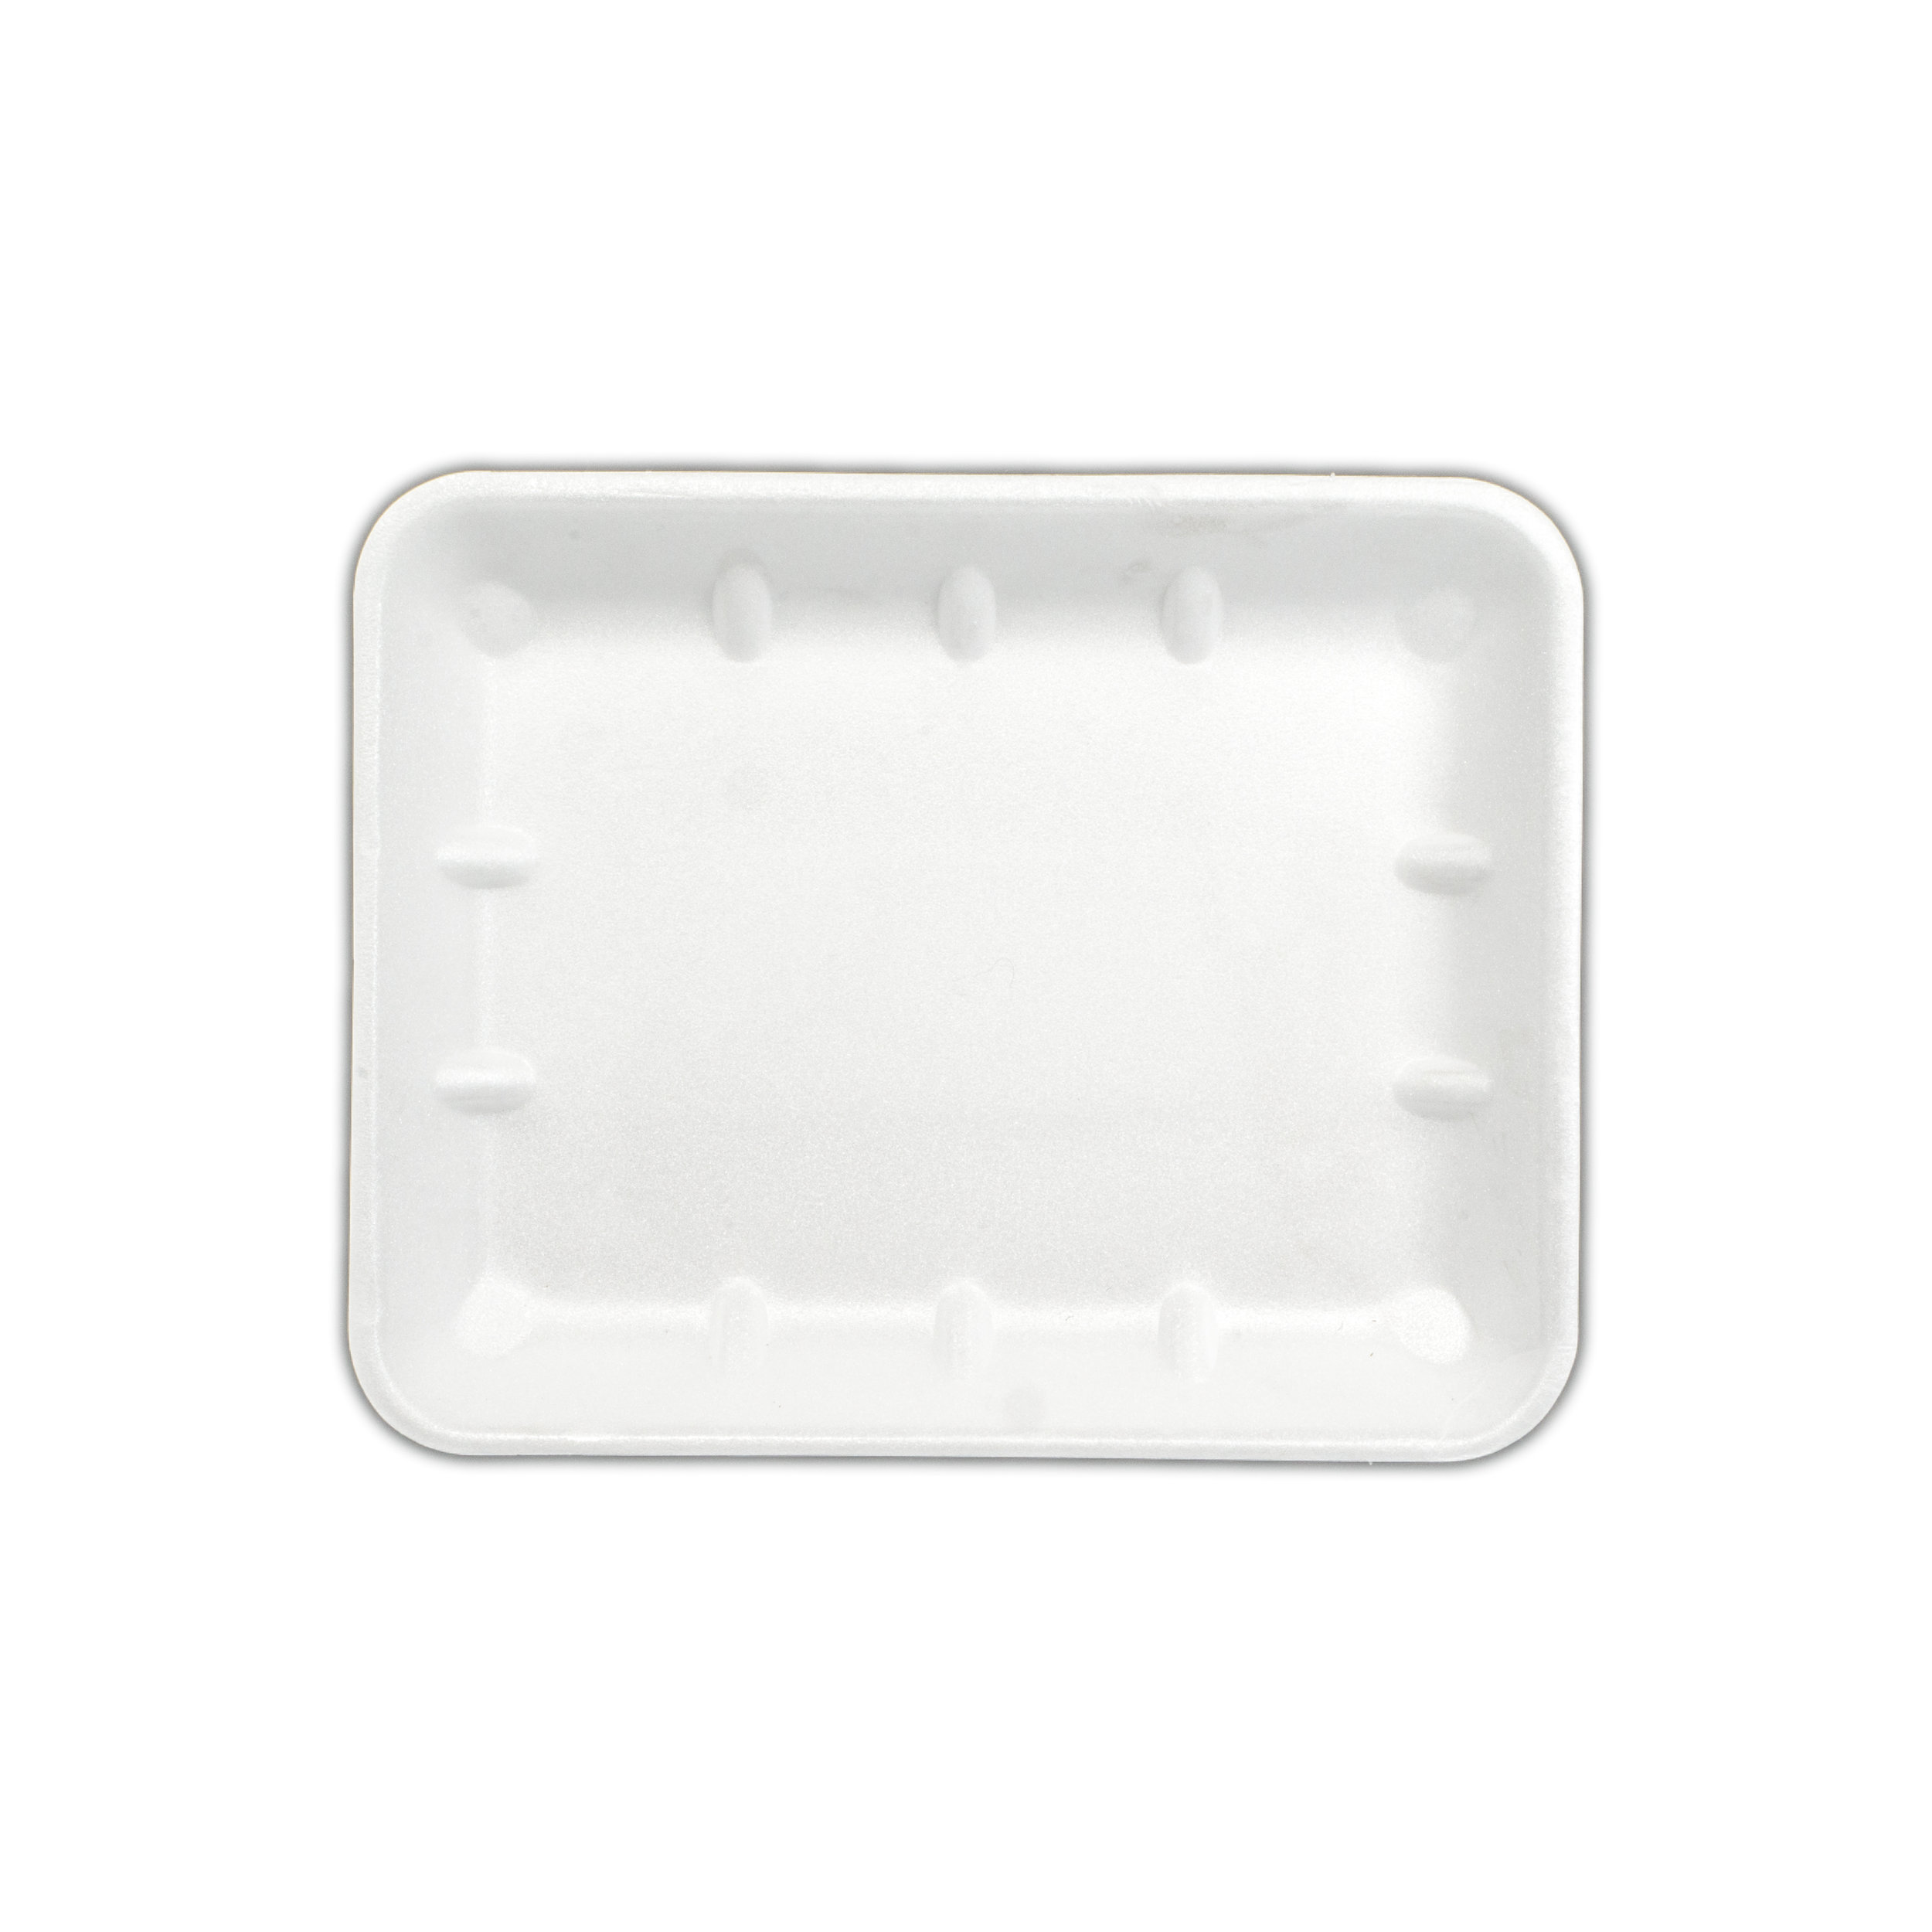 iK0209 CLOSED CELL D  EEP 11x9 WHITE   90 per sleeve 360 per carton